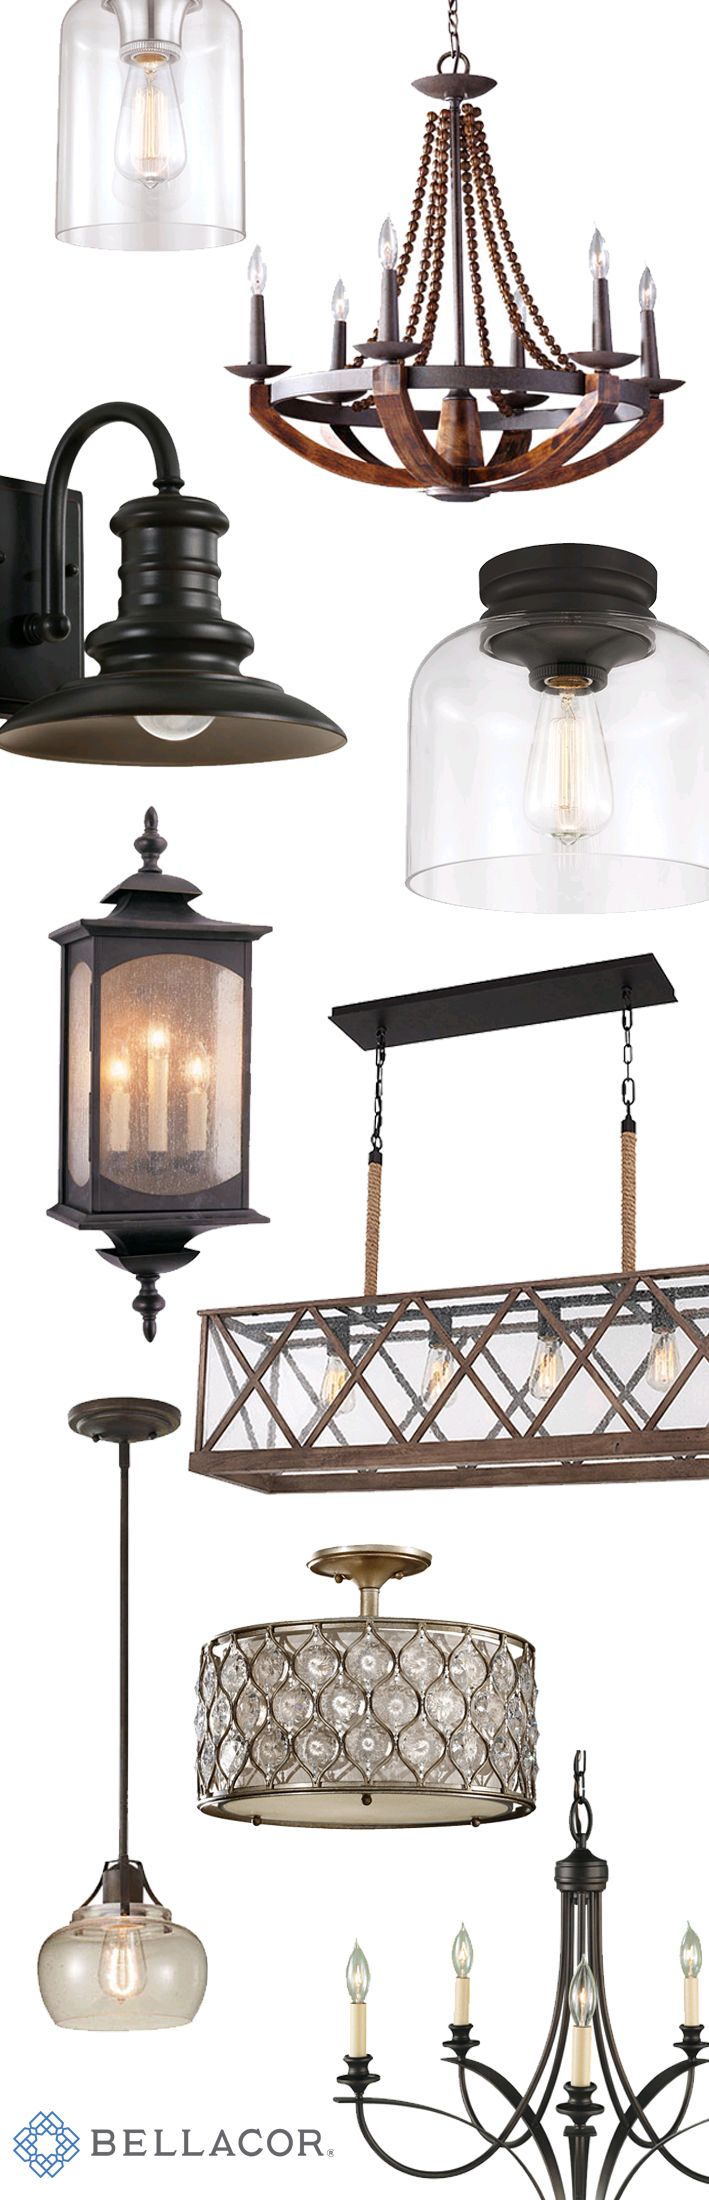 Feiss offers a full line of high-quality interior and exterior lighting solutions across multiple categories such as chandeliers, pendants, drum pendants, wall sconces and more. Their innovative designs set the industry standard. For a limited time only, save up to 50%. And don't forget free shipping on orders over $75 and the Bellacor price match pledge. http://www.bellacor.com/feiss.htm?partid=social_pinterestad_holiday_feiss_product